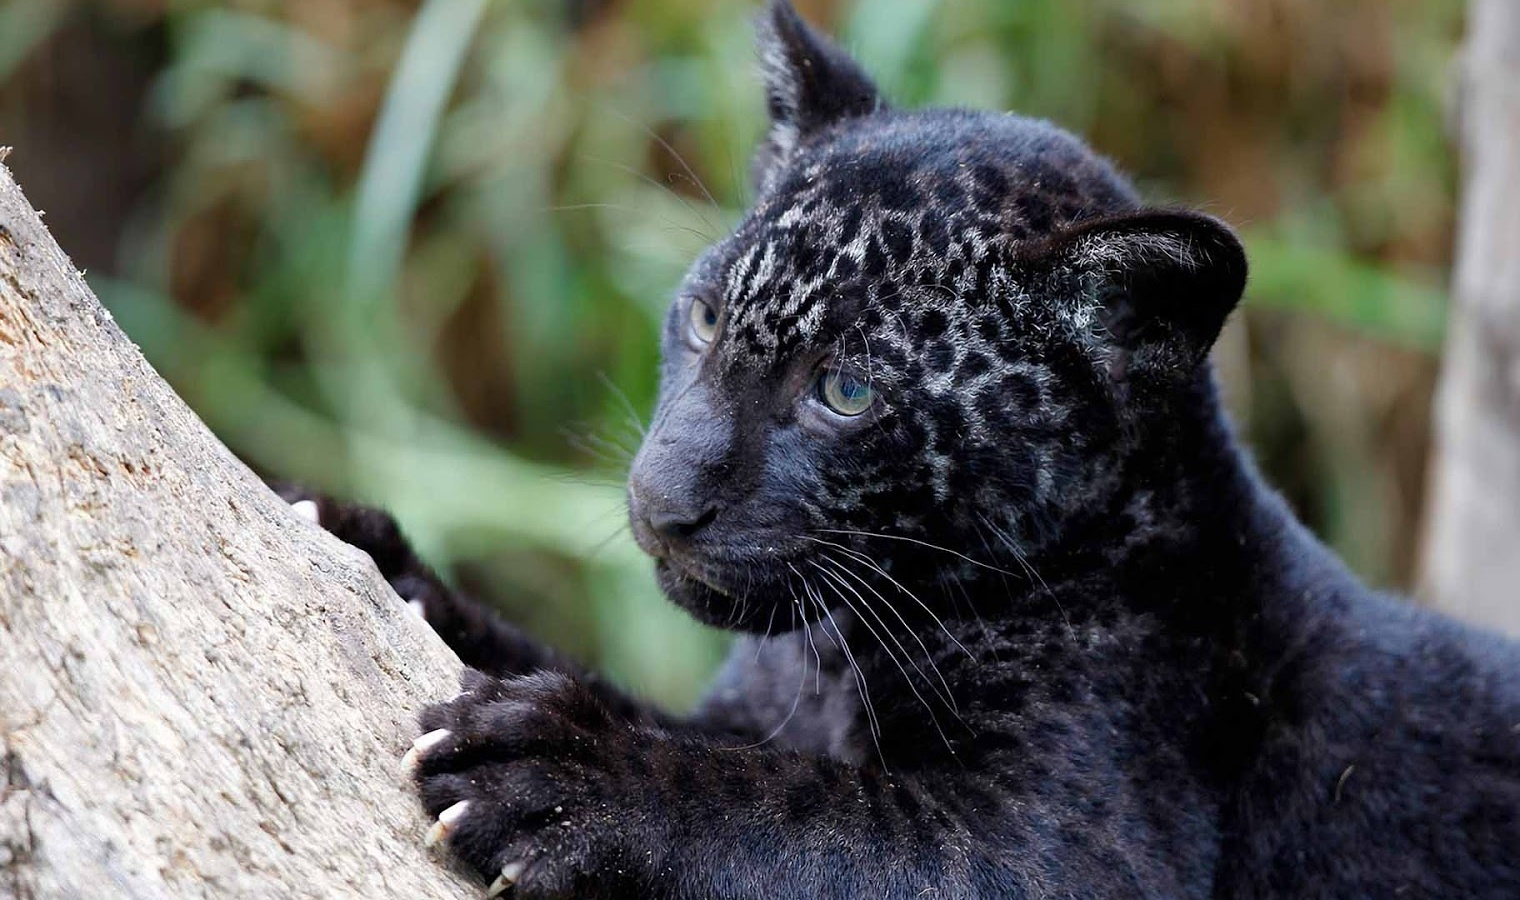 Black Panther in Kumbhalgarh Wildlife Sanctuary